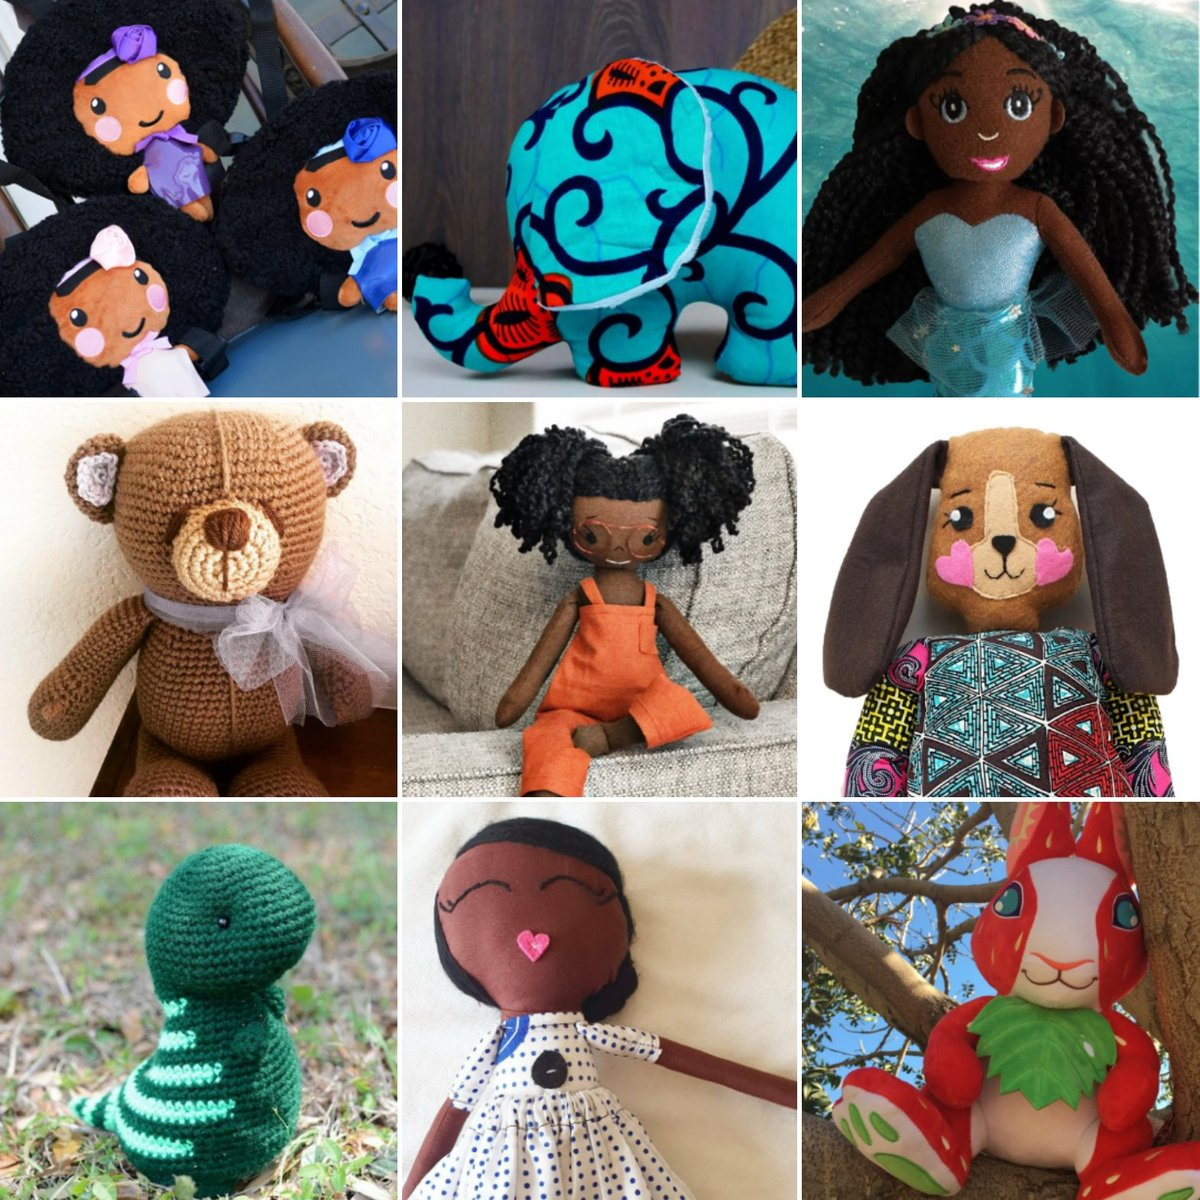 Are you looking for a soft friend in these tough times? Would you would like to support the black community? Here are 9 #BlackOwnedBusinesses that sell stuffed animals and dolls! #BLM #BlackLivesMatter  THREAD: